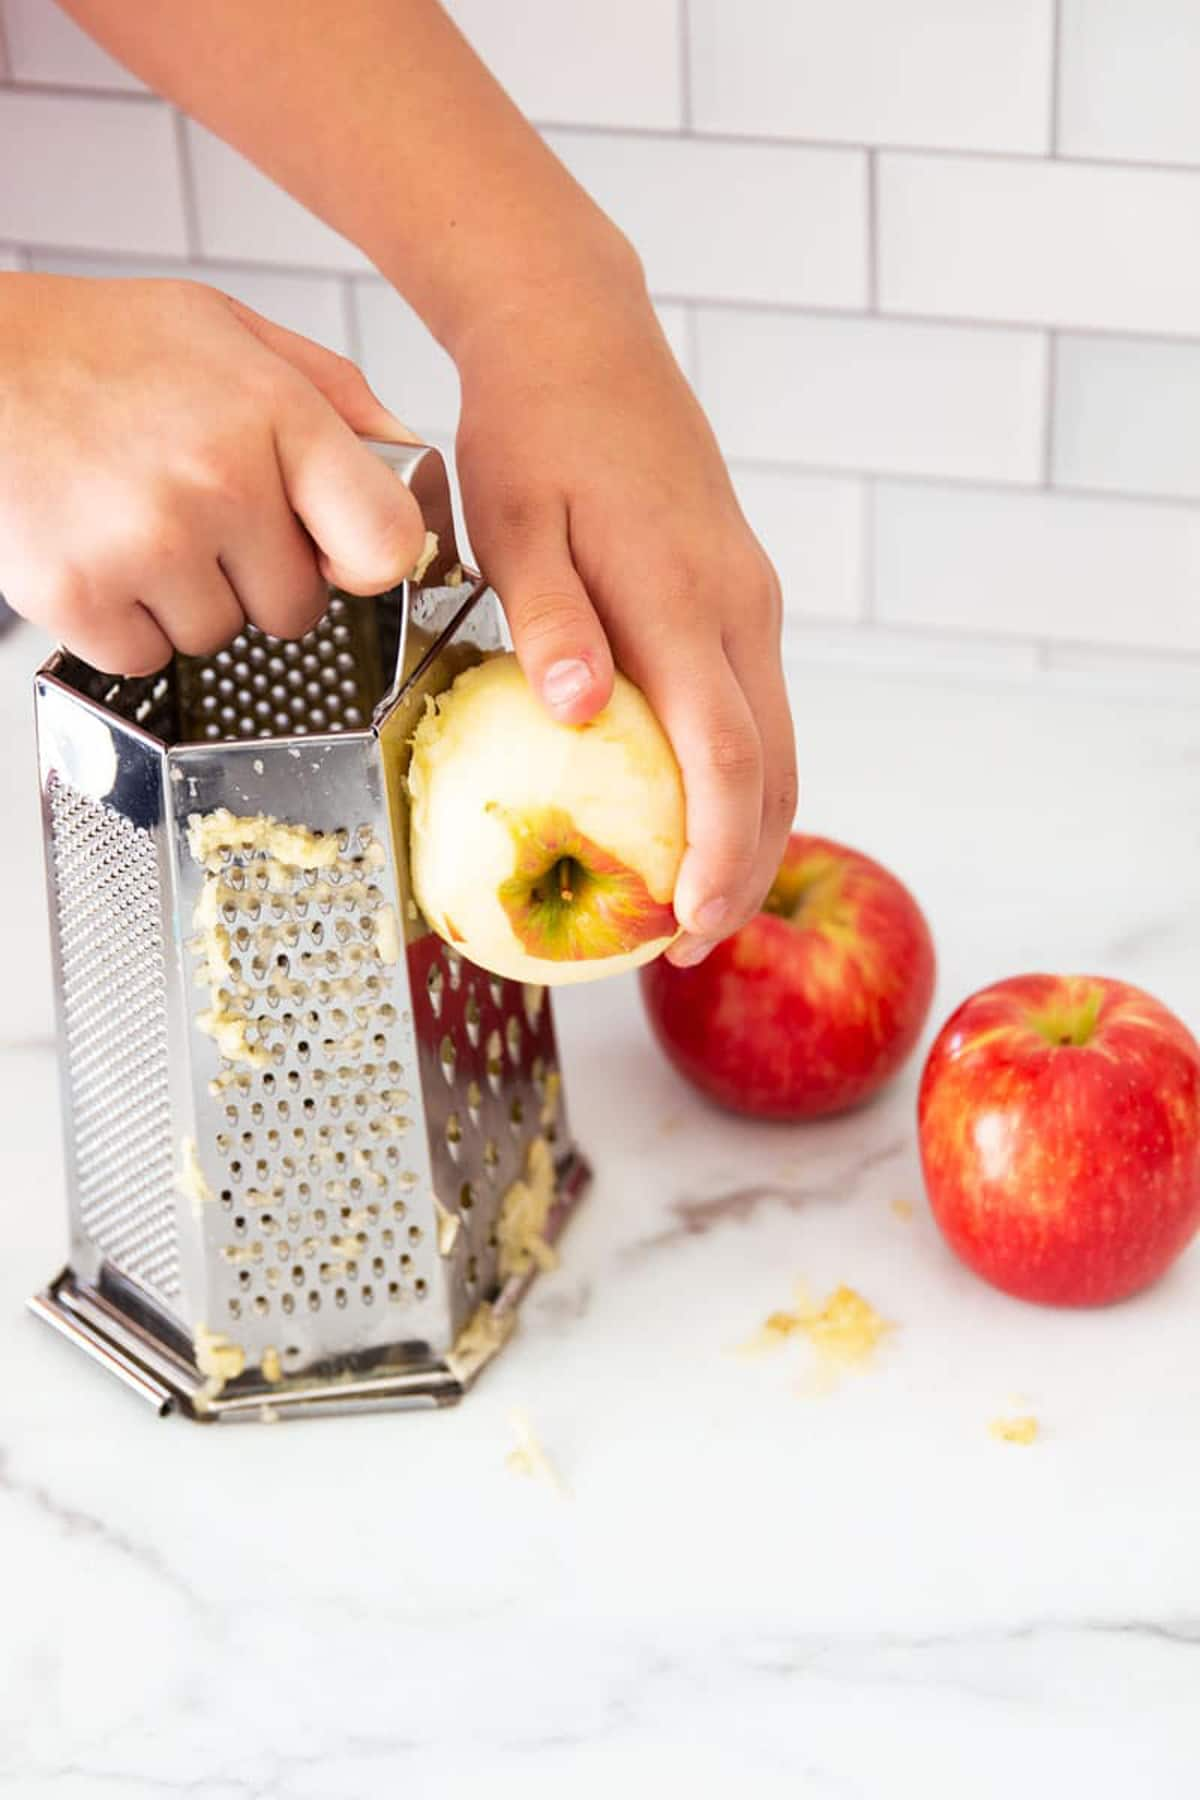 Person grating a peeled apple.